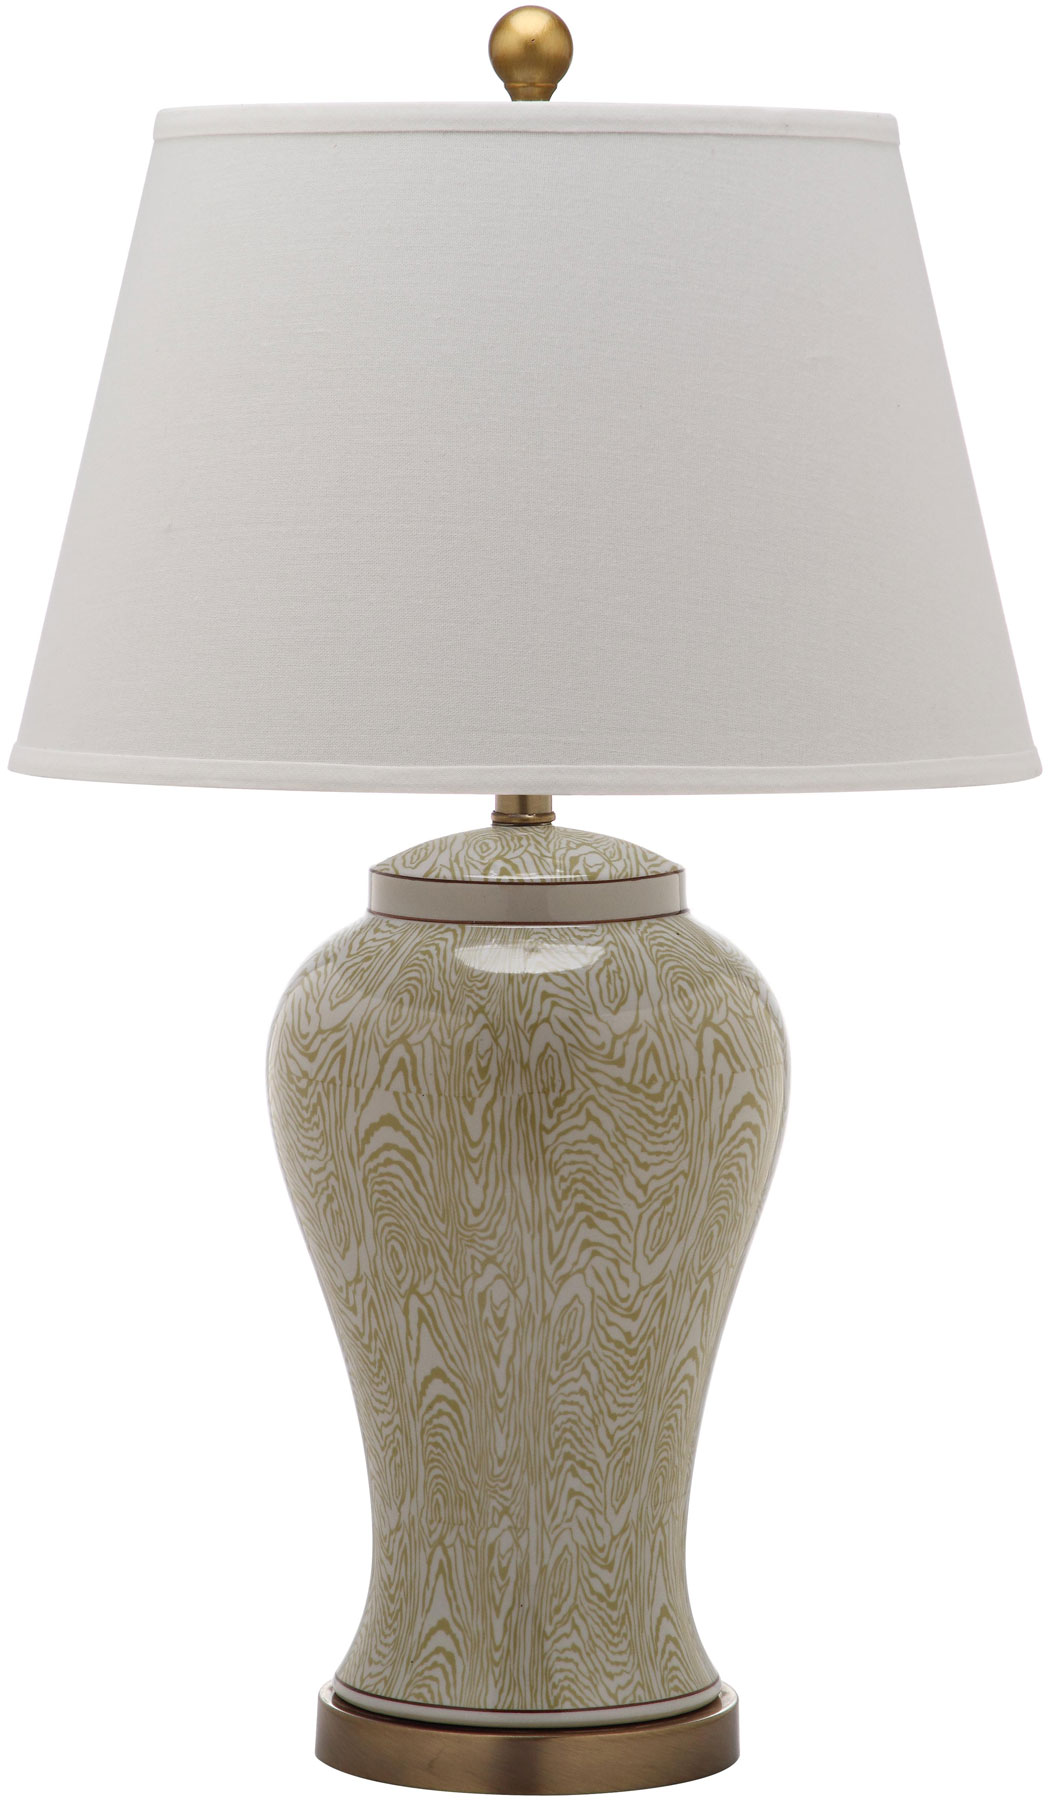 SPRING WOODS TABLE LAMP LIT4170D SET2